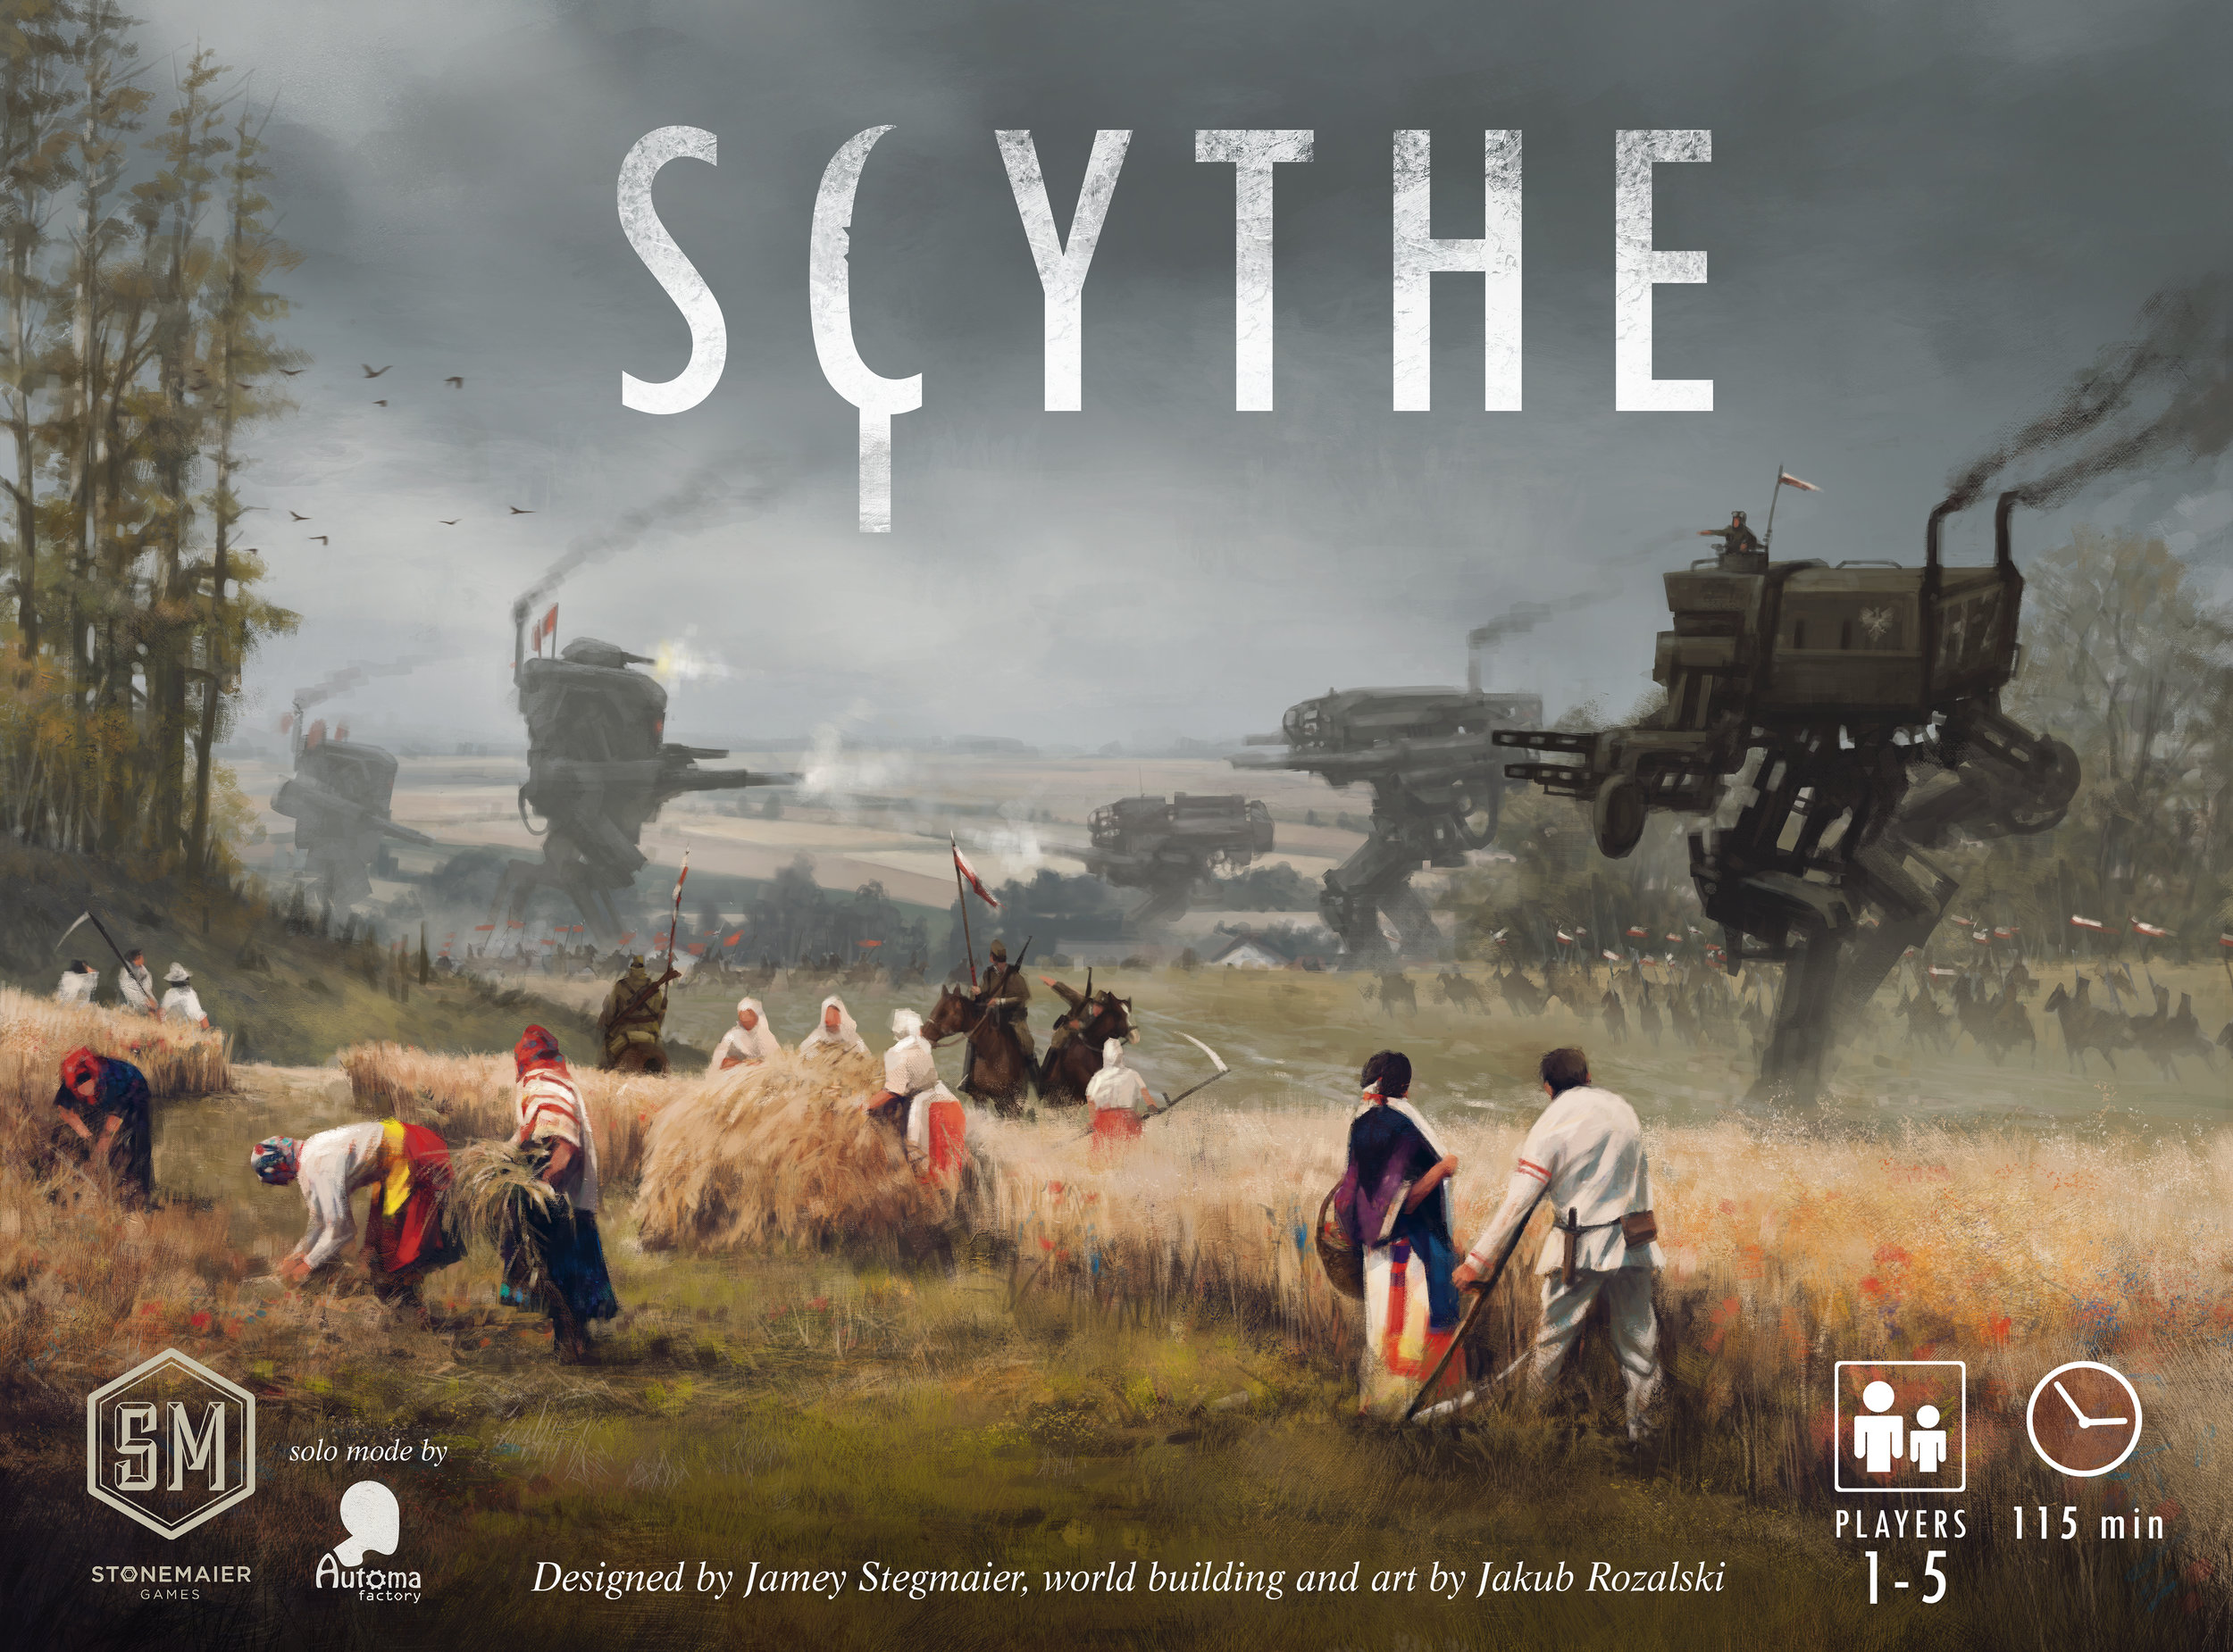 Scythe - RELEASED: 2016Scythe is an engine-building game set in an alternate-history 1920s period. It is a time of farming and war, broken hearts and rusted gears, innovation and valor.In Scythe, each player represents a character from one of five factions of Eastern Europe who are attempting to earn their fortune and claim their faction's stake in the land around the mysterious Factory. Players conquer territory, enlist new recruits, reap resources, gain villagers, build structures, and activate monstrous mechs.